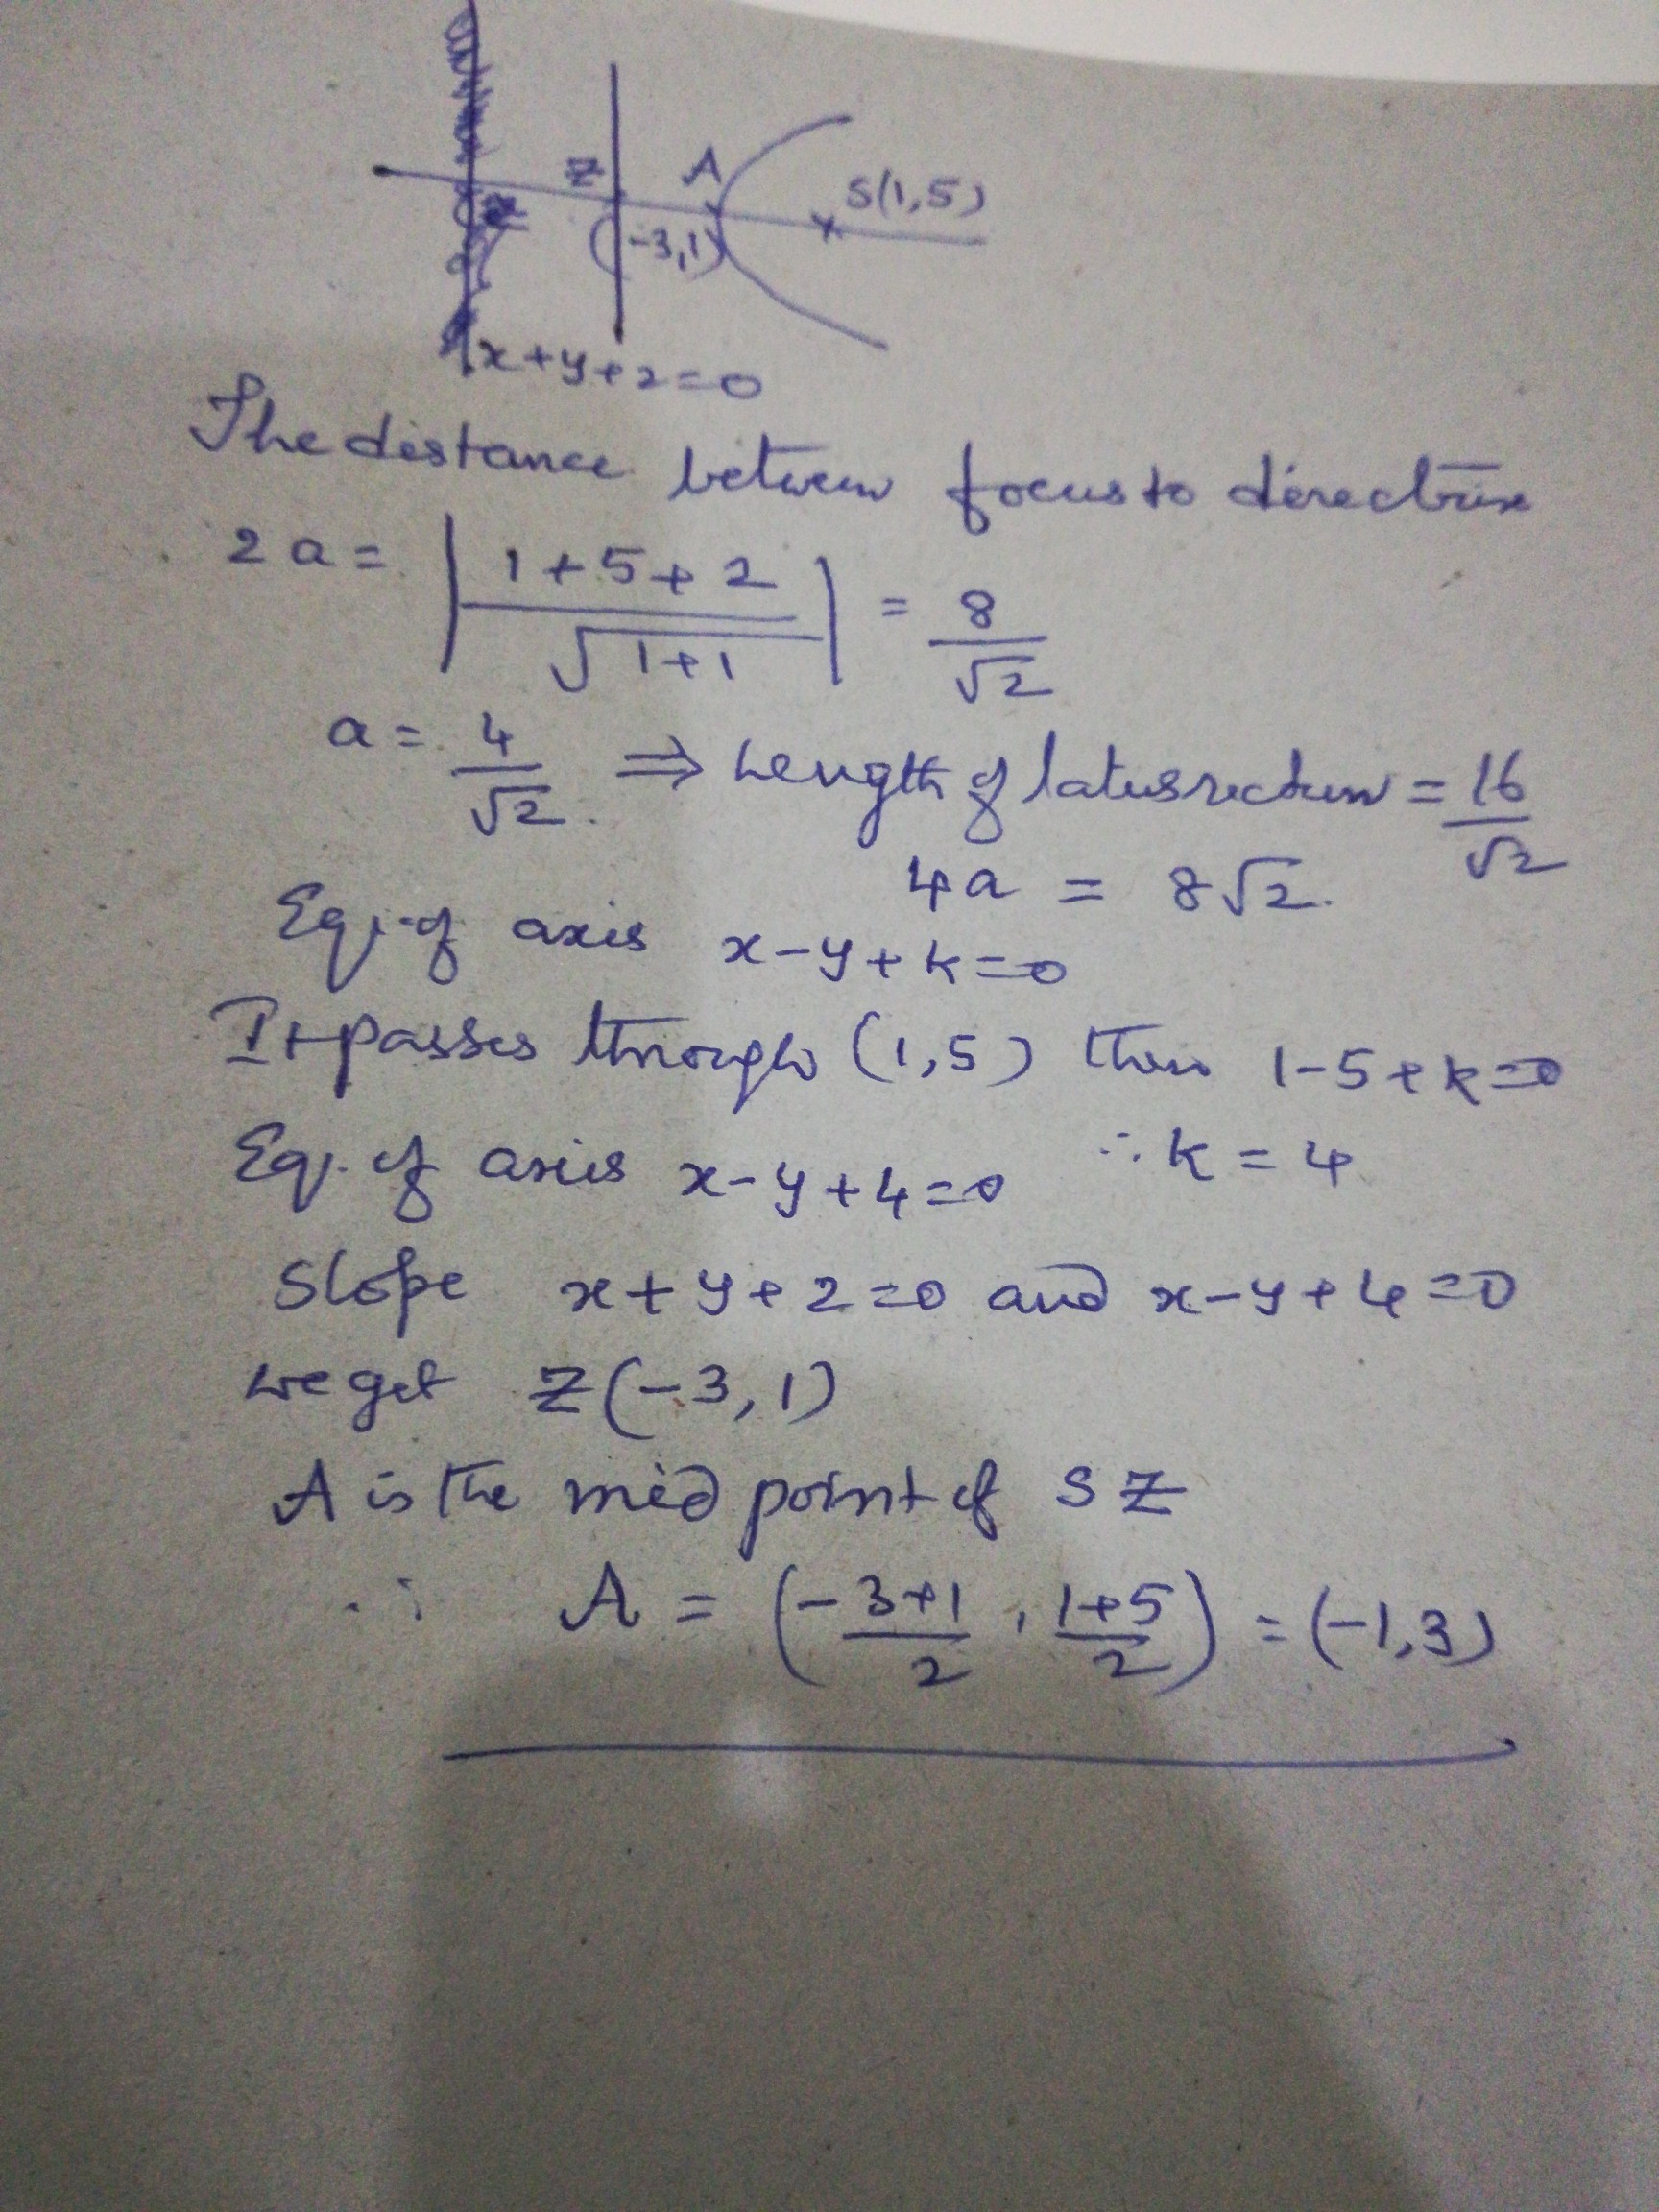 Find Standard Equation Of Parabola Given Vertex And